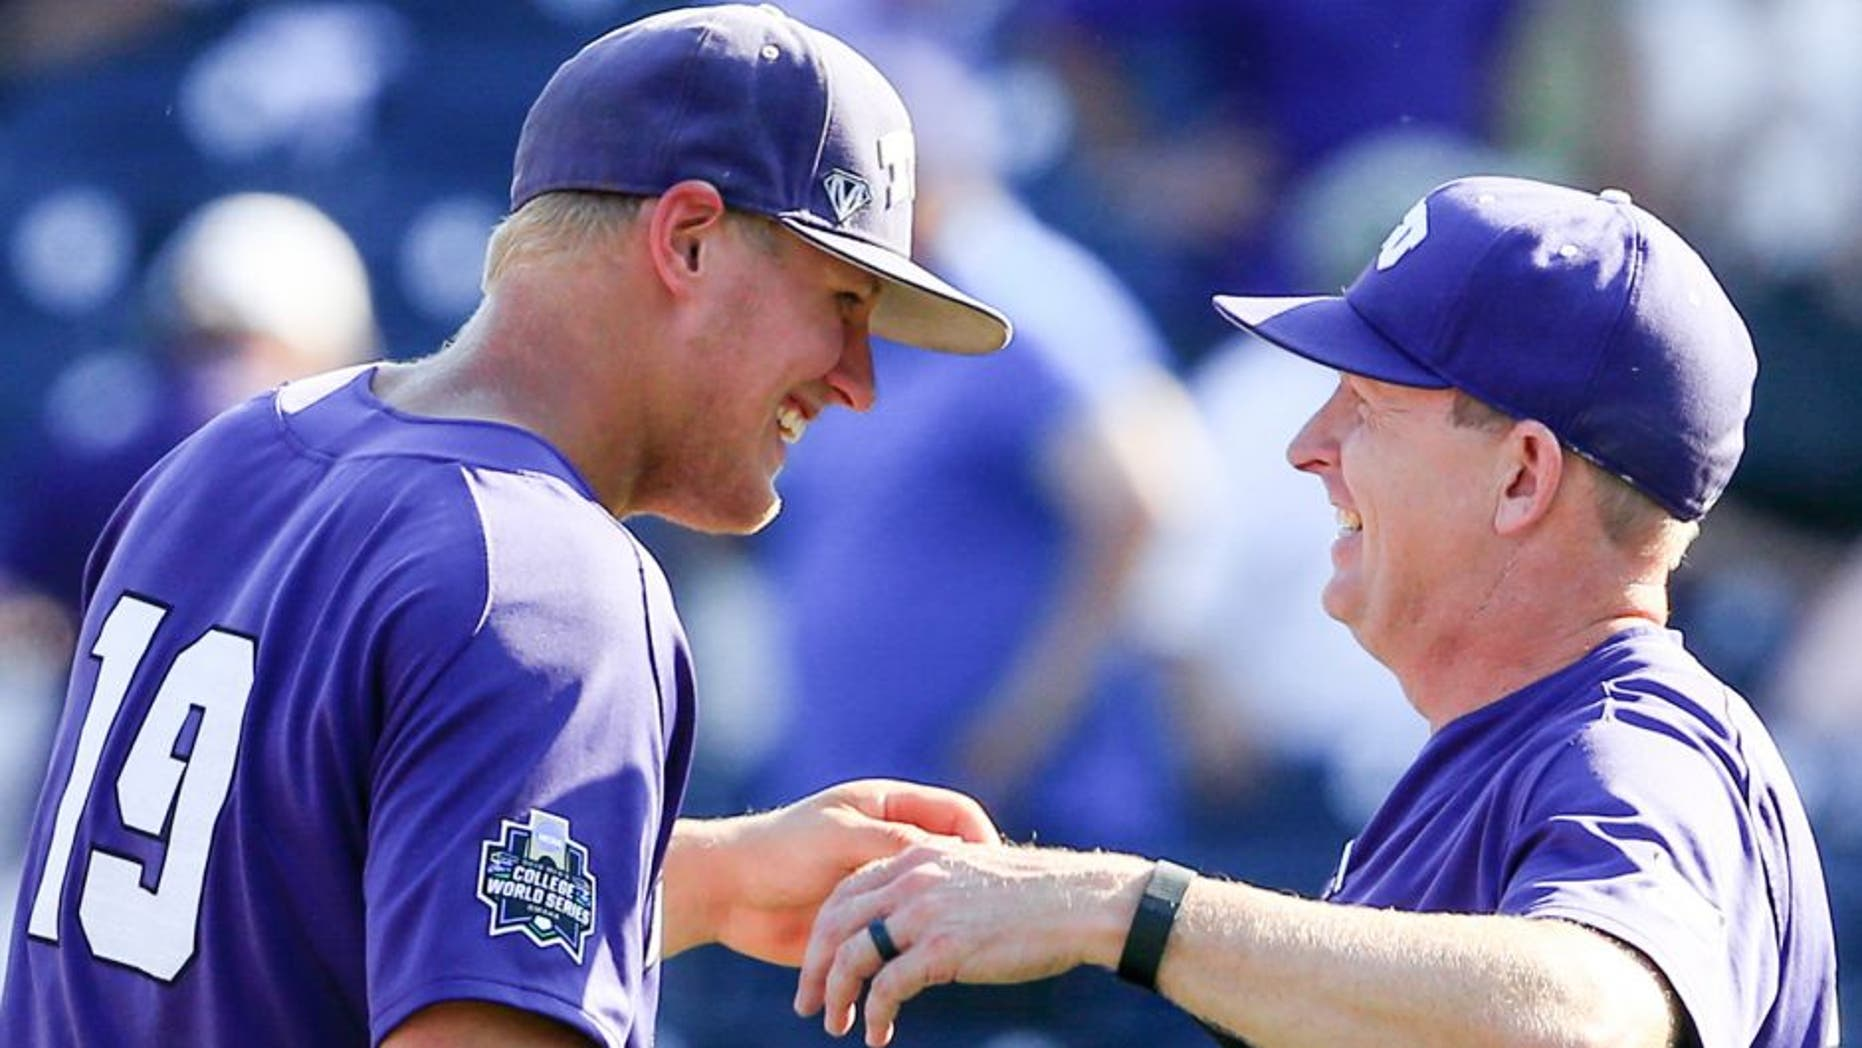 TCU's Luken Baker, left, celebrates with coach Jim Schlossnagle, right, following an NCAA men's College World Series baseball game against Texas Tech in Omaha, Neb., Sunday, June 19, 2016. Baker hit a go-ahead three-run home run in the top of the ninth and TCU won 5-3. (AP Photo/Nati Harnik)